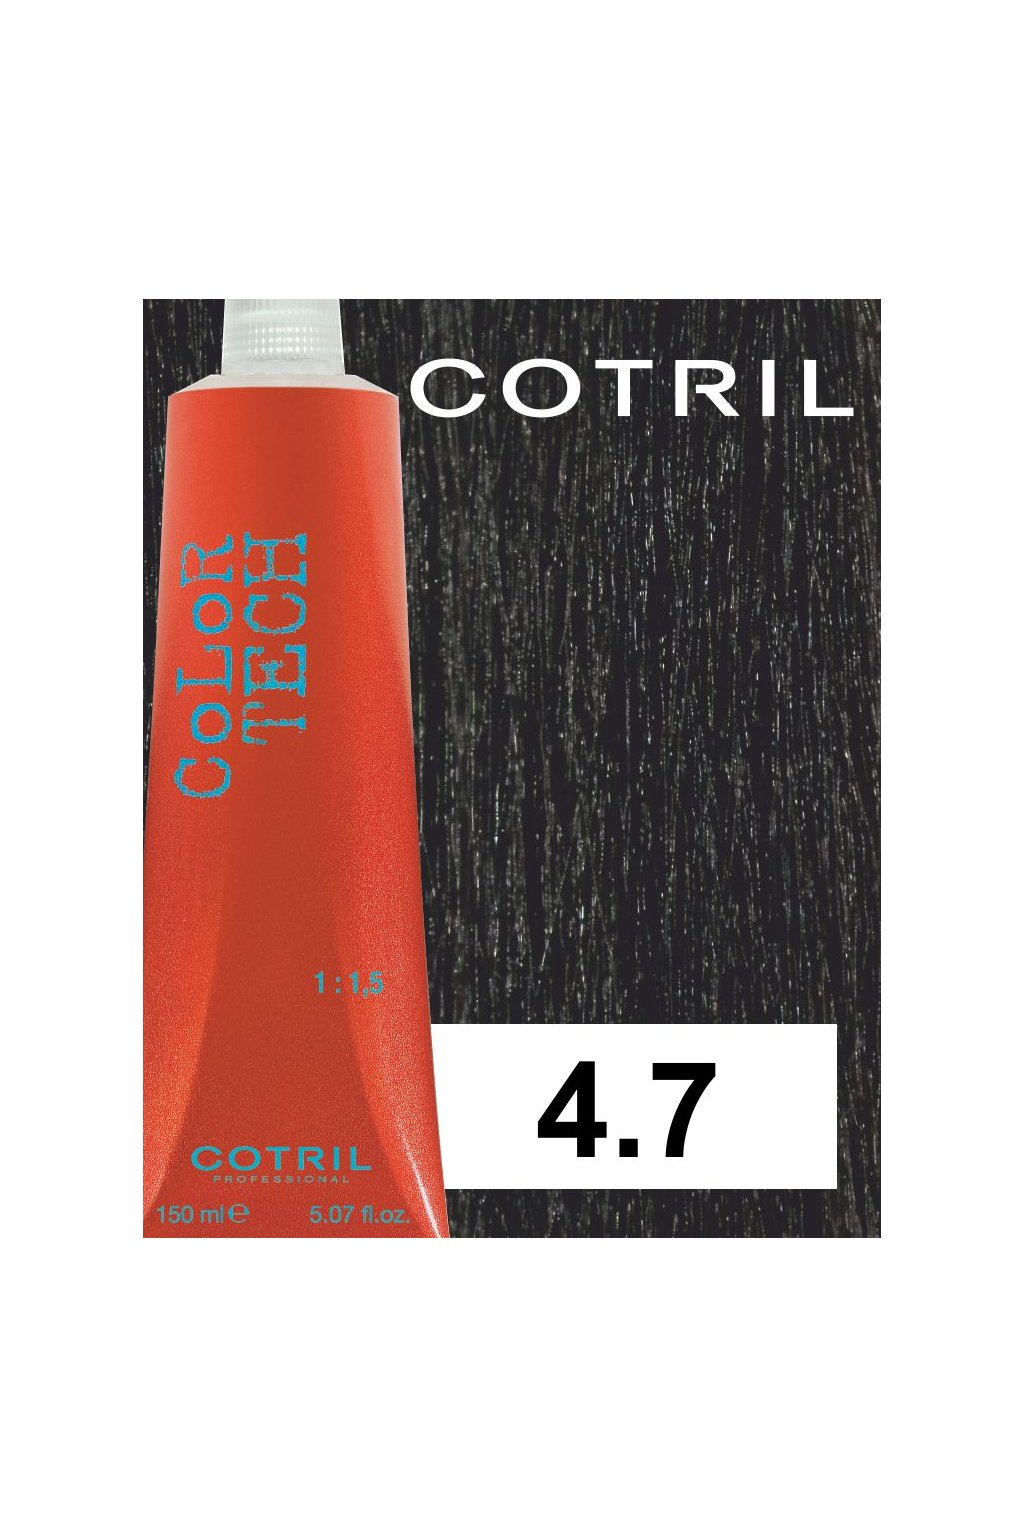 4 7 ct cotril